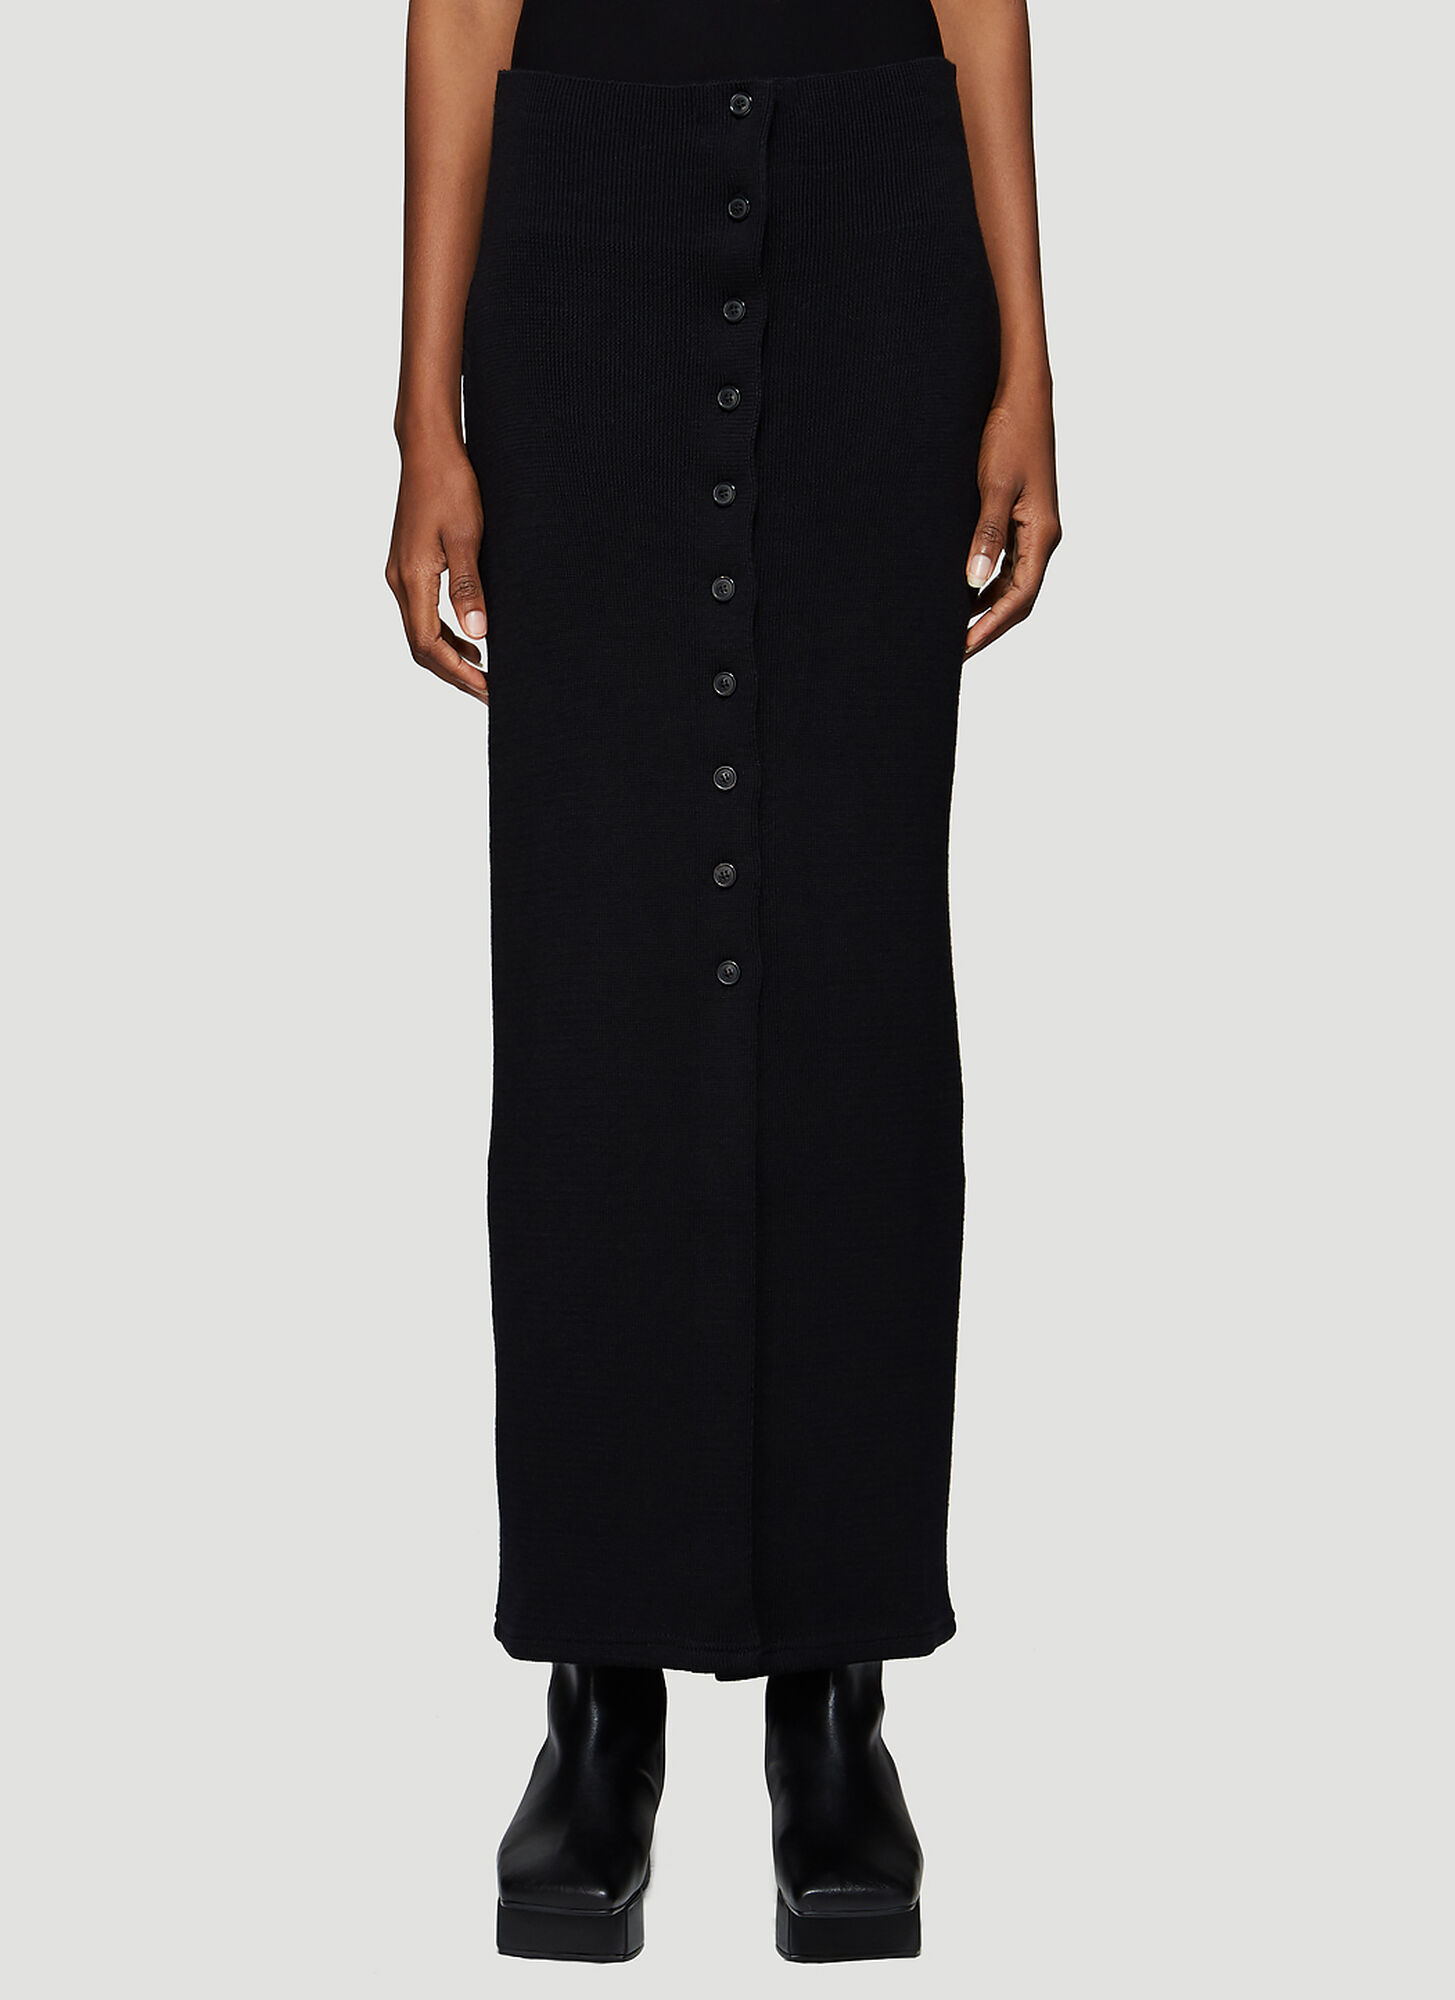 Our Legacy Buttoned Knit Skirt in Black